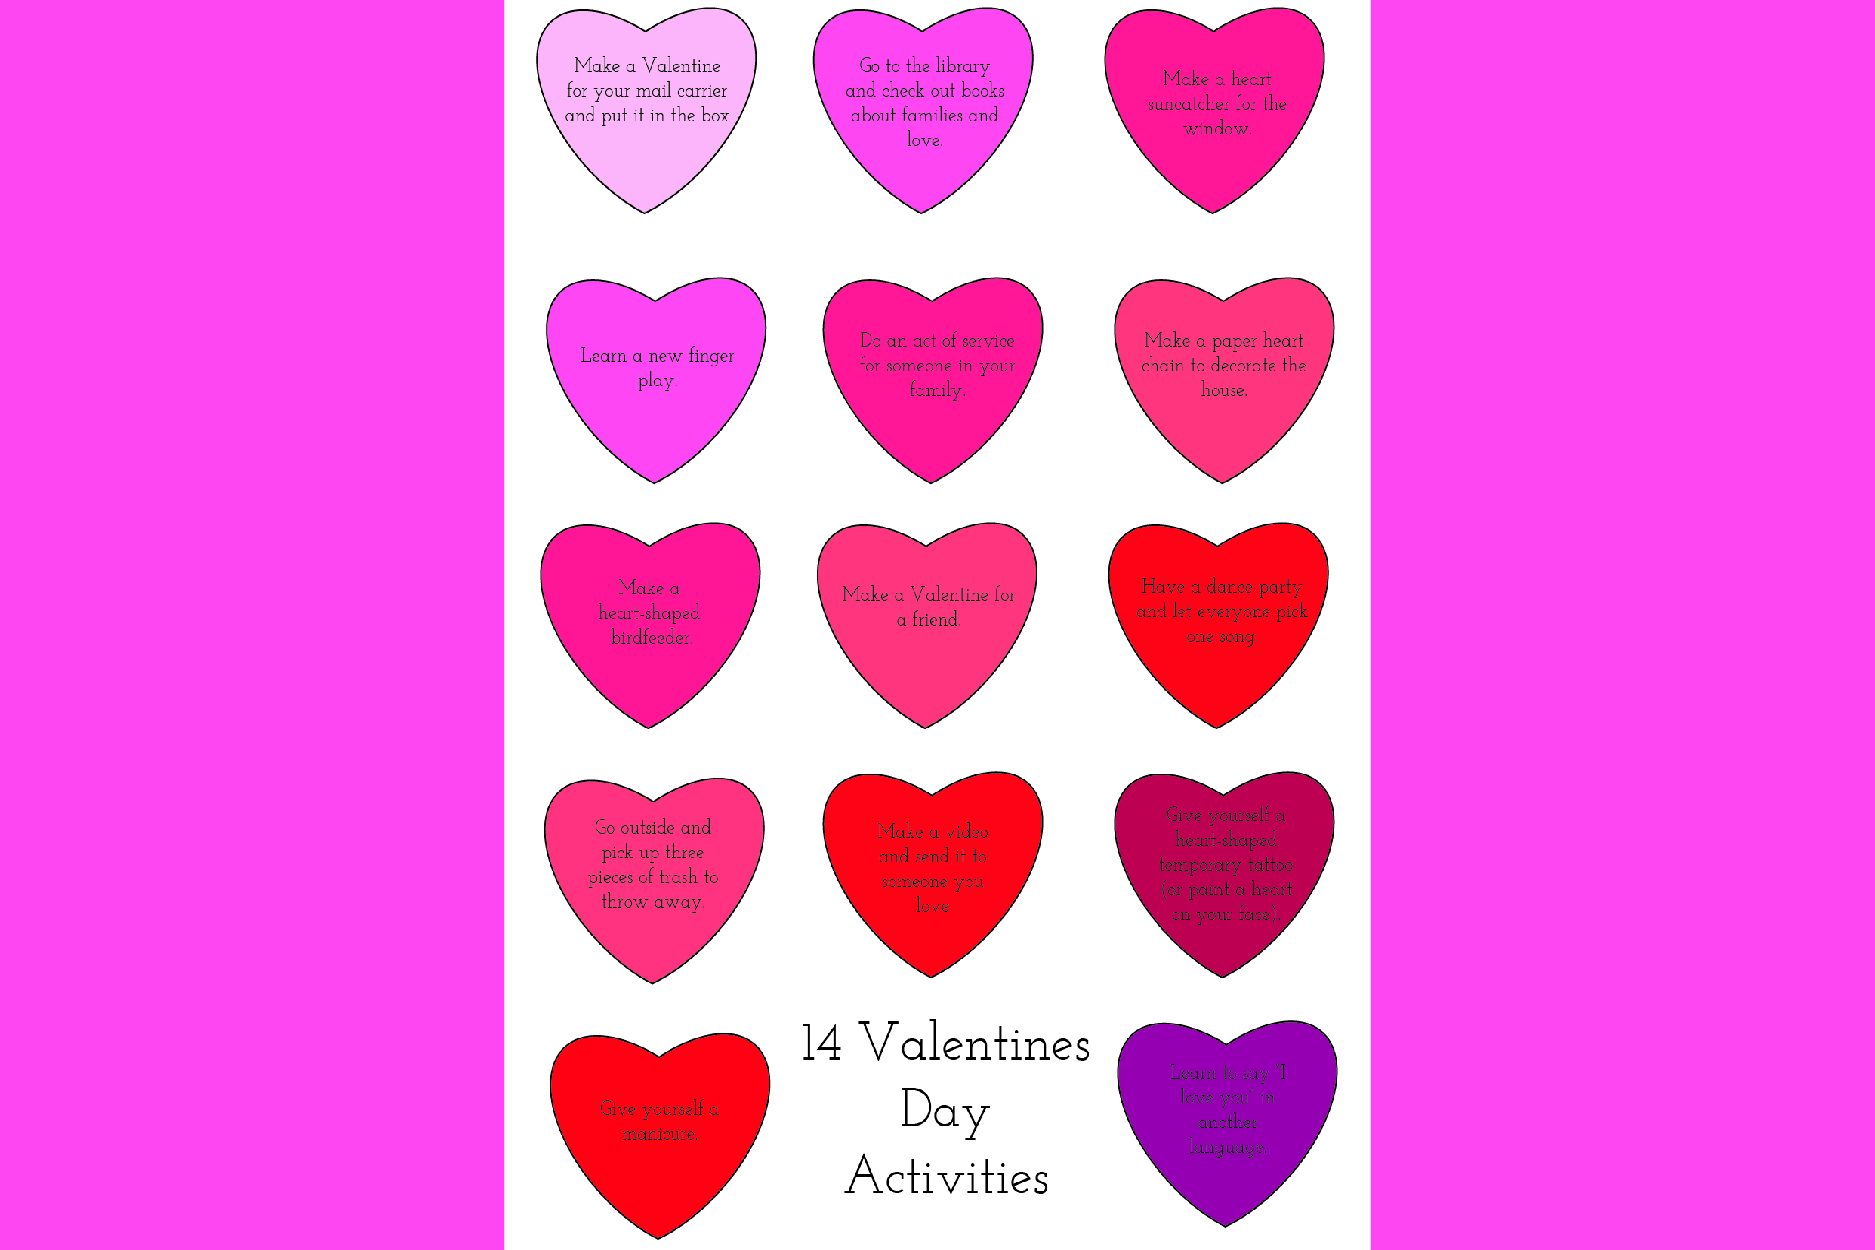 14 Free or Cheap Activities for Valentines | Homan at Home